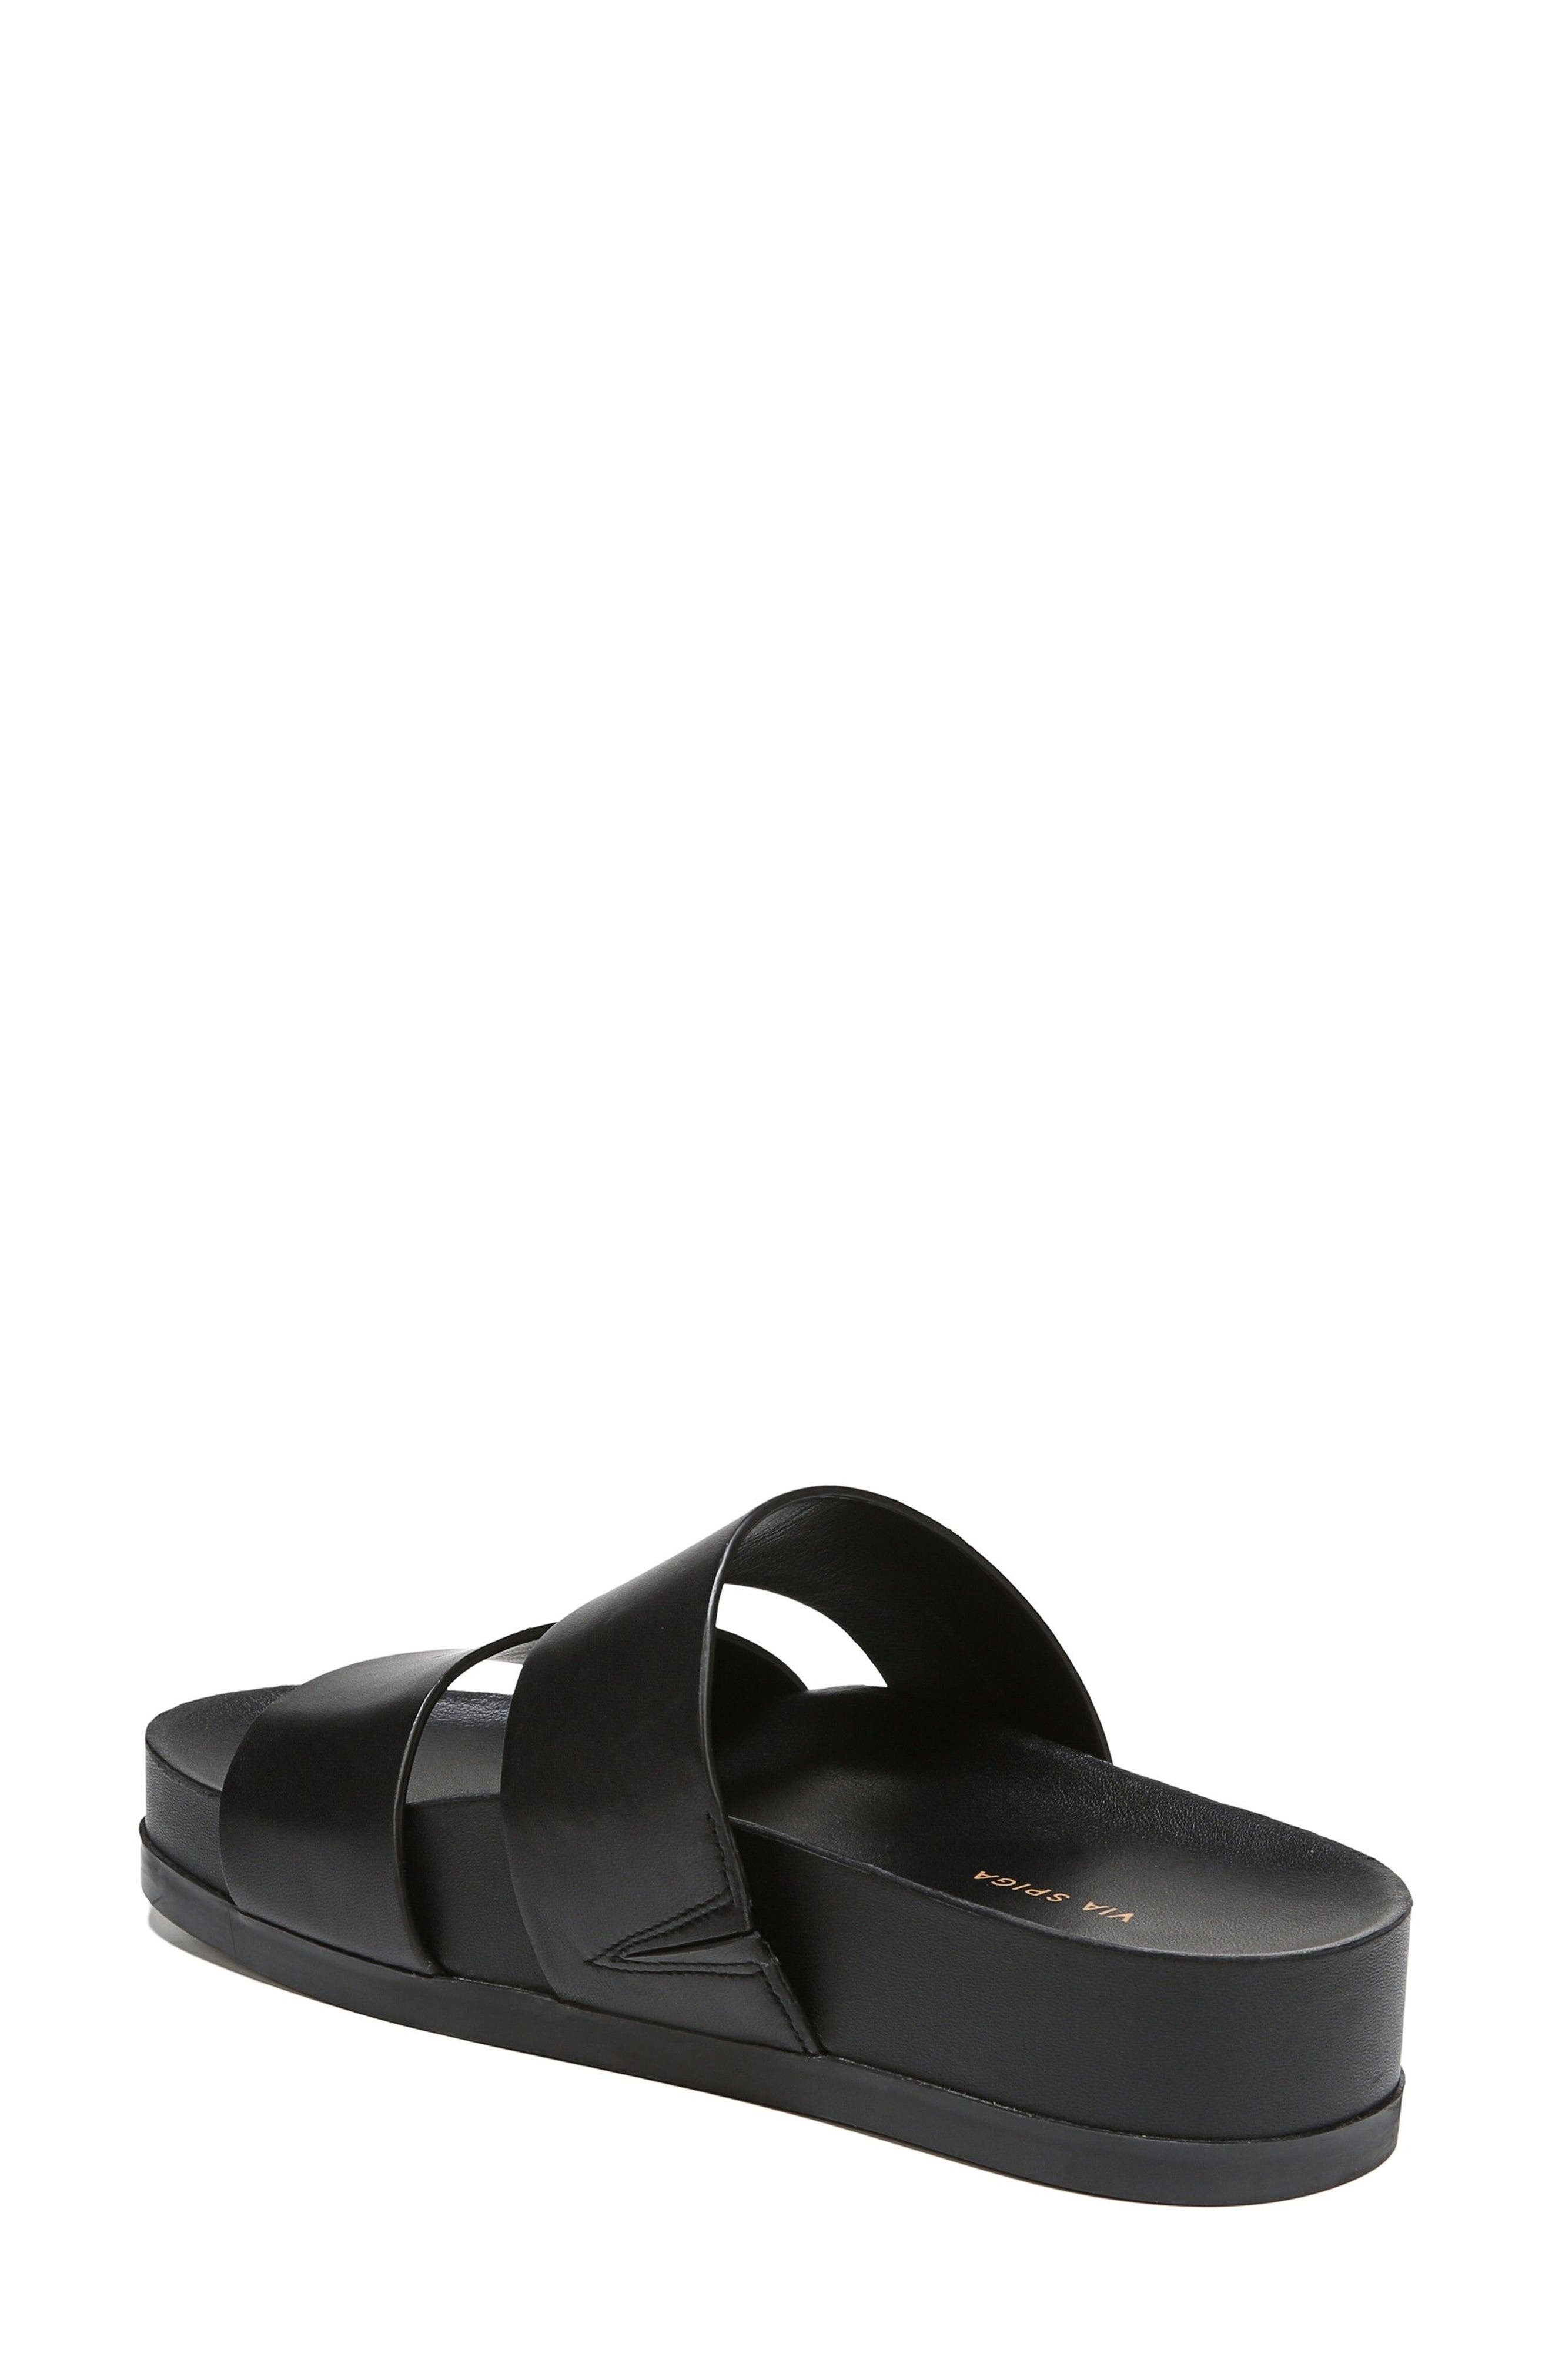 VIA SPIGA,                             Milton Slide Sandal,                             Alternate thumbnail 2, color,                             001